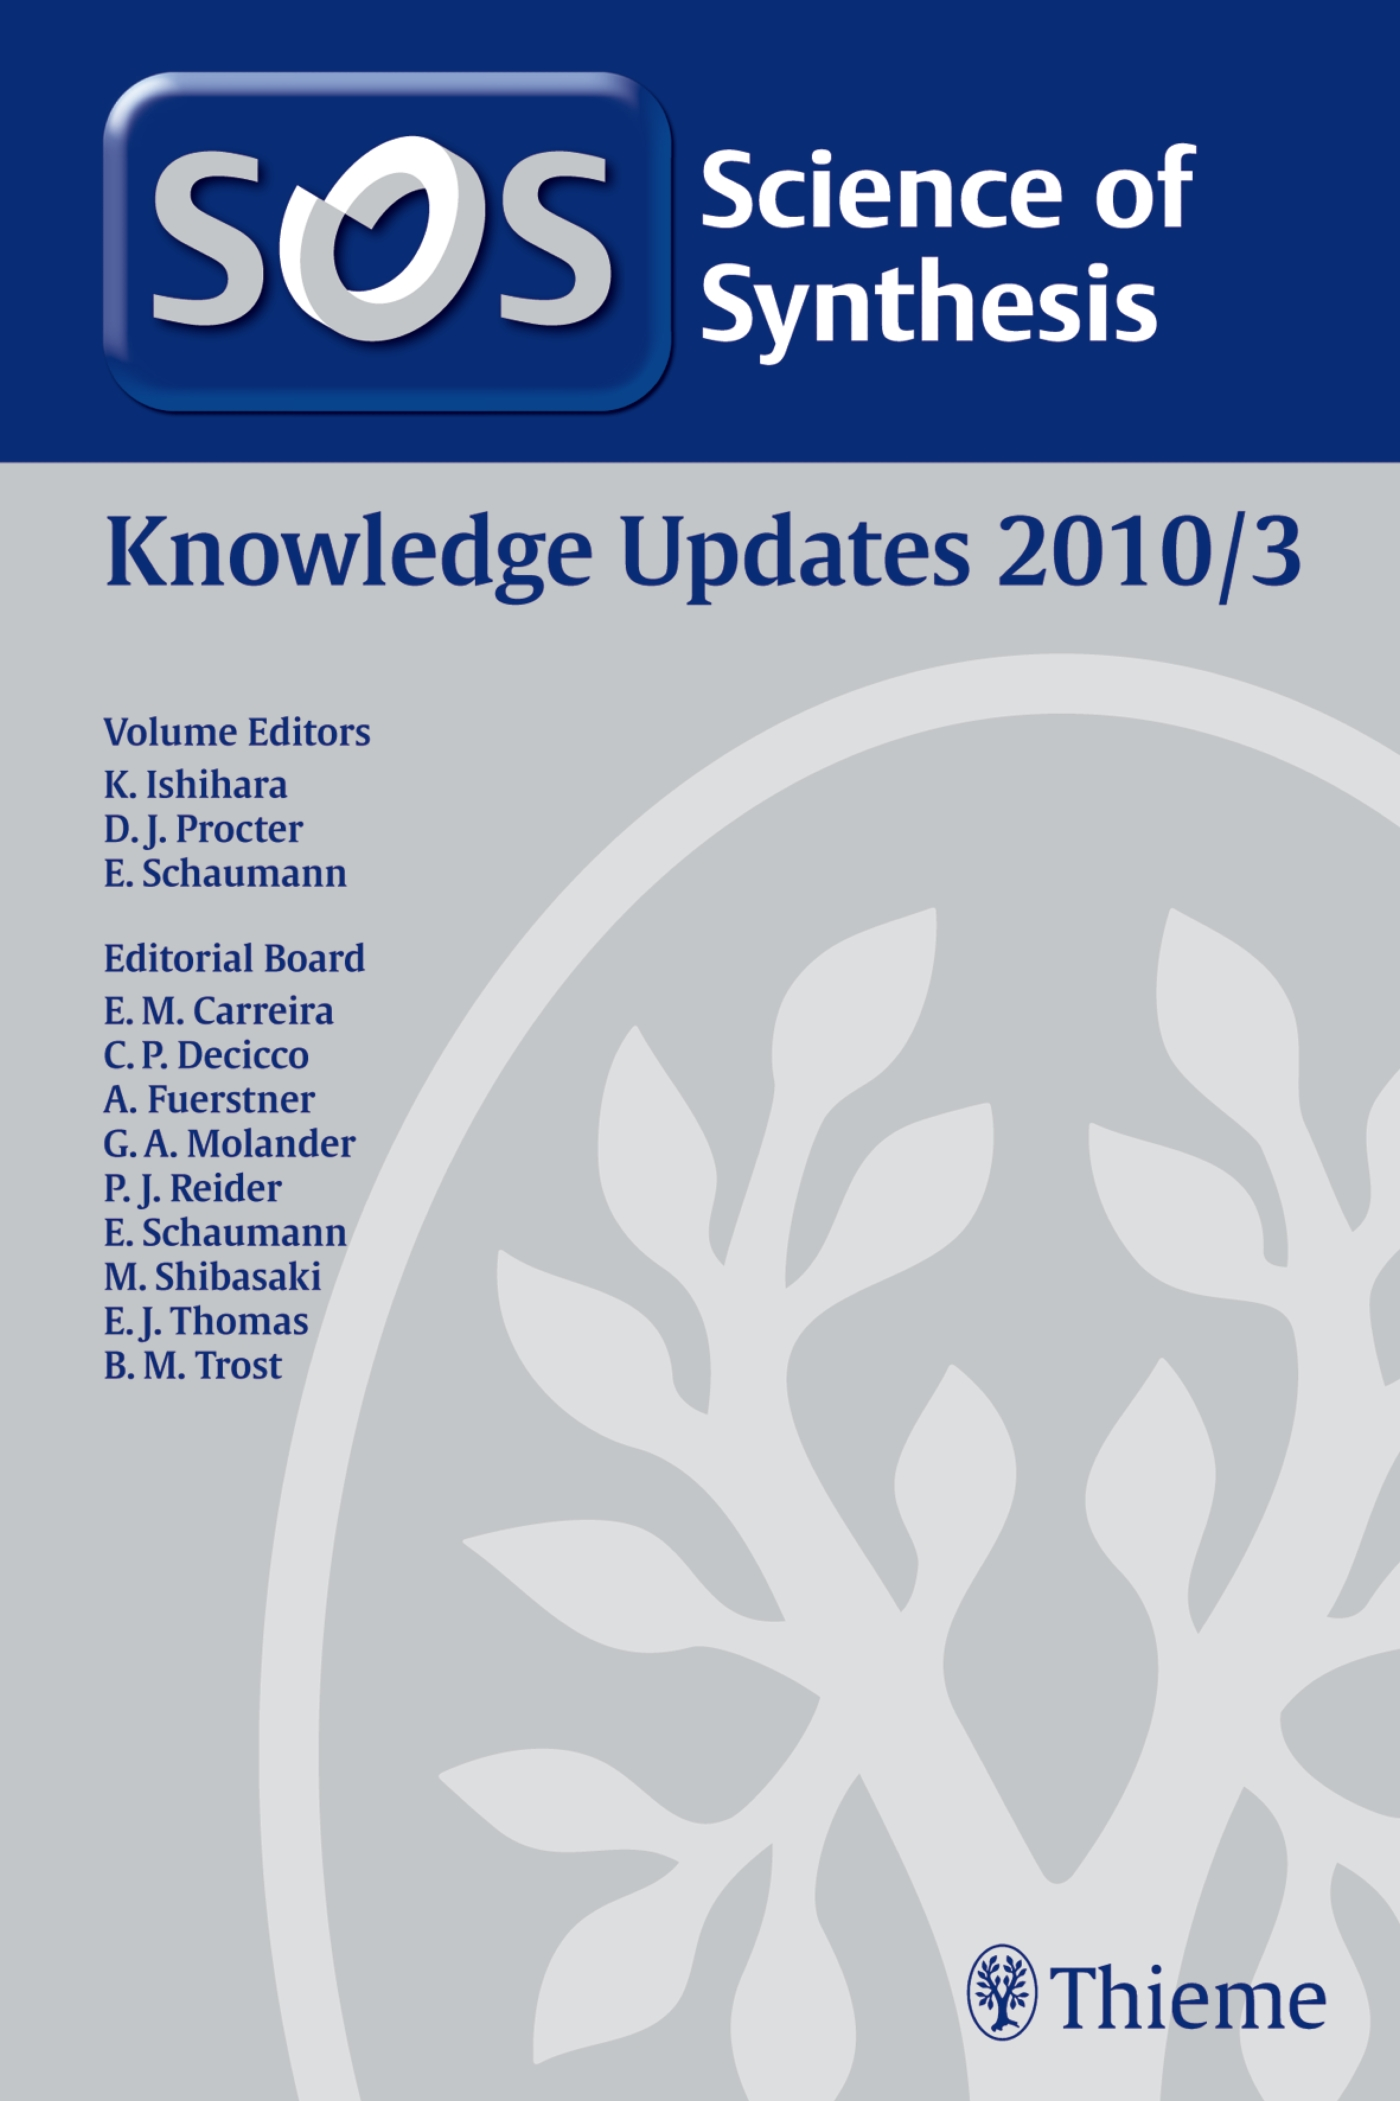 Science of Synthesis Knowledge Updates 2010 Vol. 3